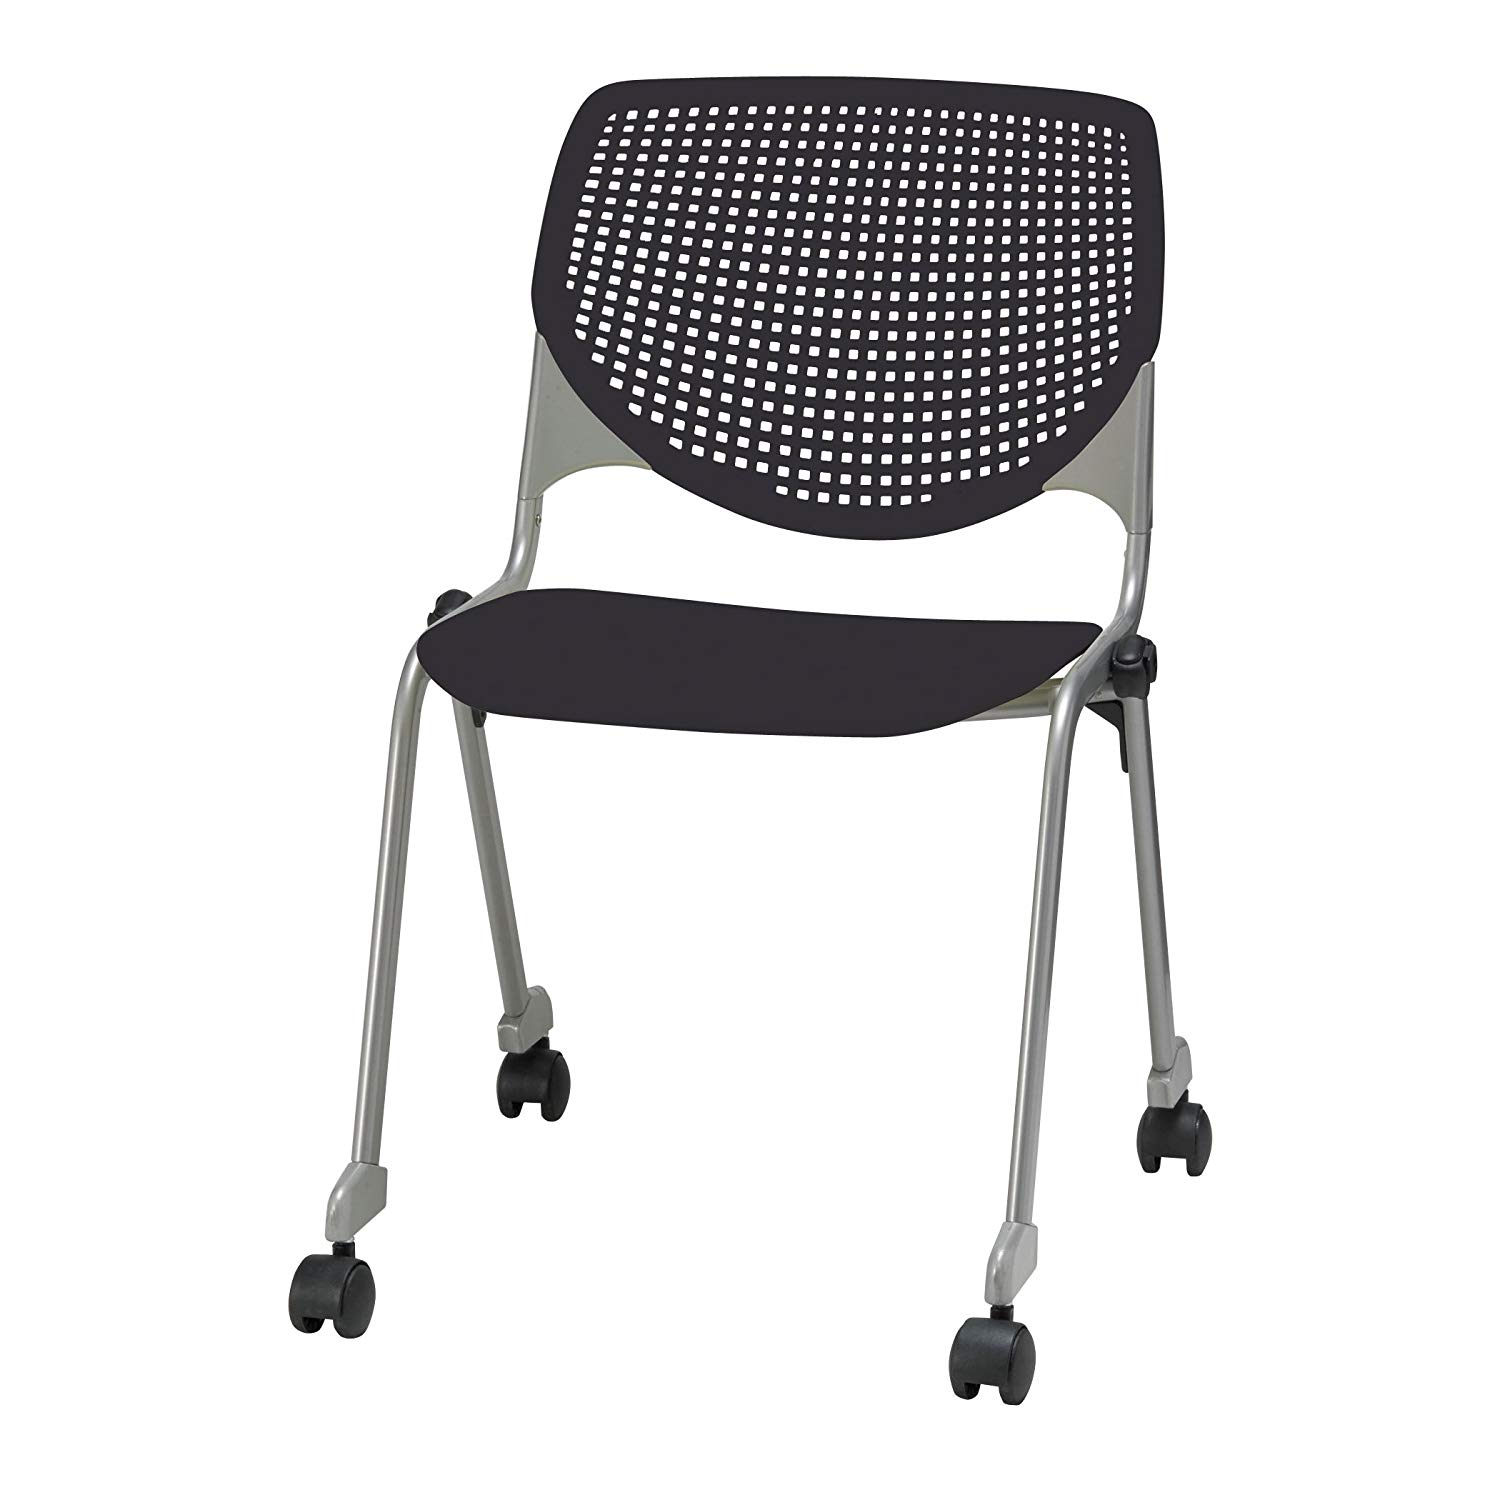 KFI Seating Kool Series Polypropylene Stack Chair with Perforated Back and Casters, Black Finish